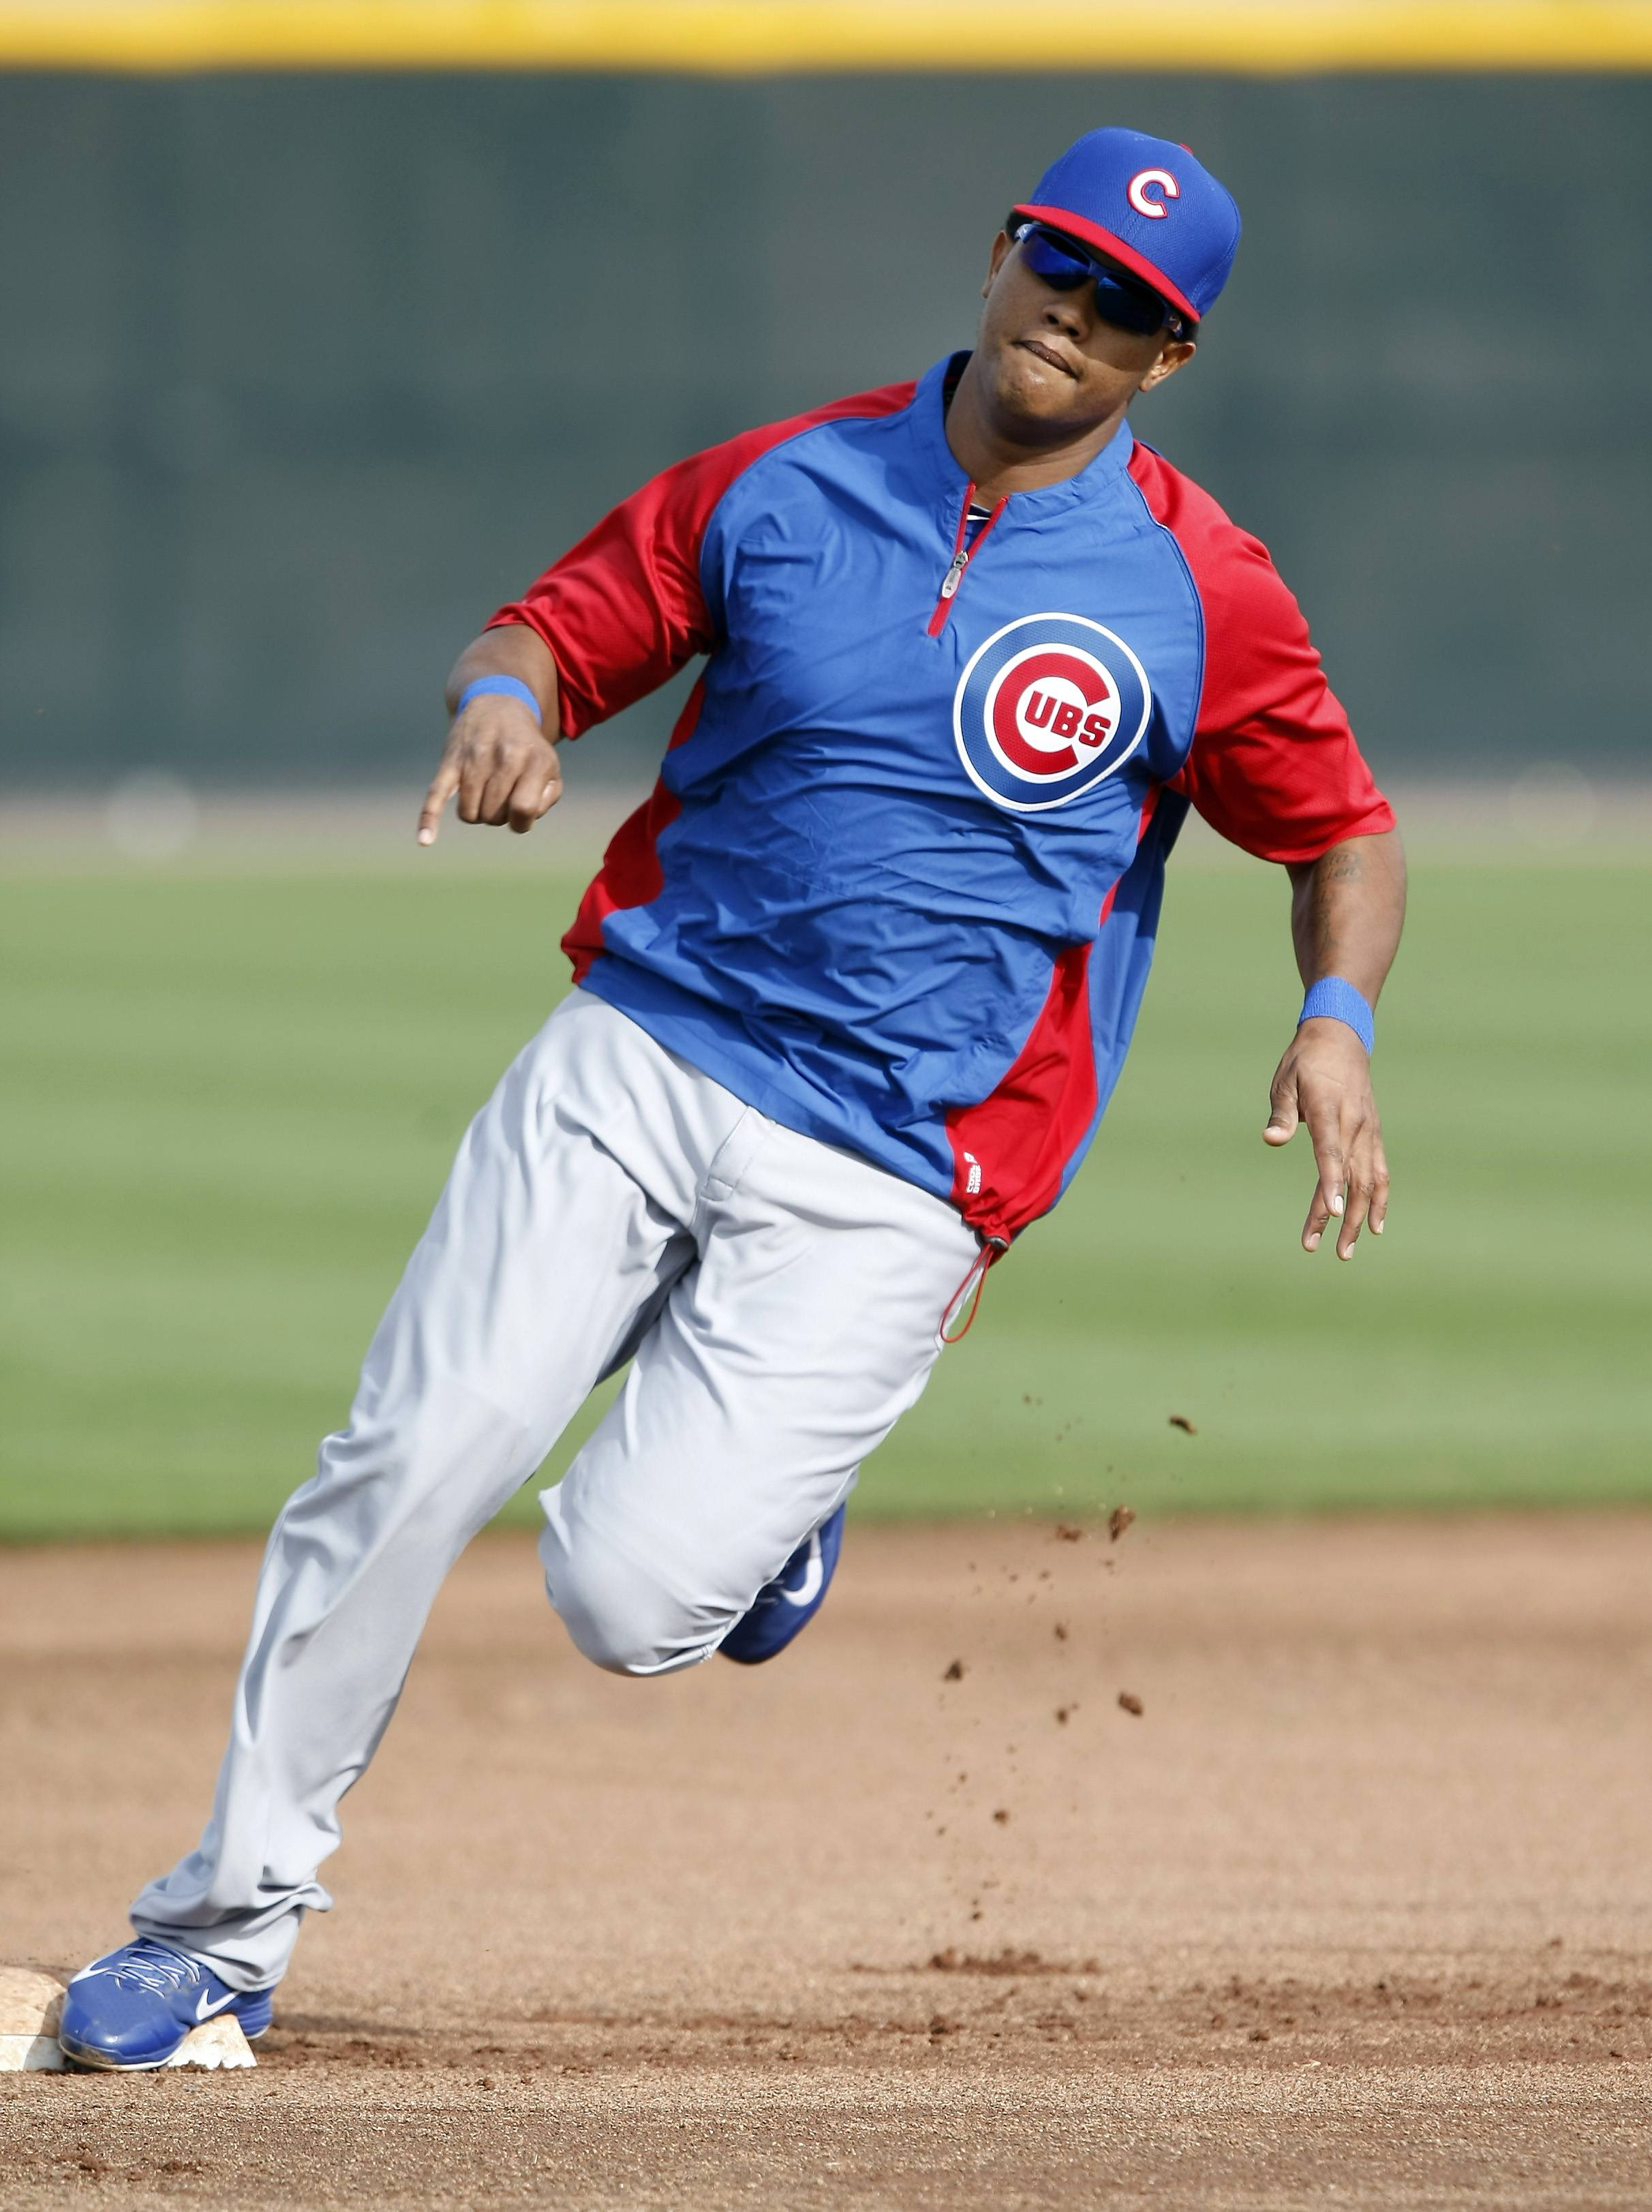 Big season crucial for Castro, Cubs